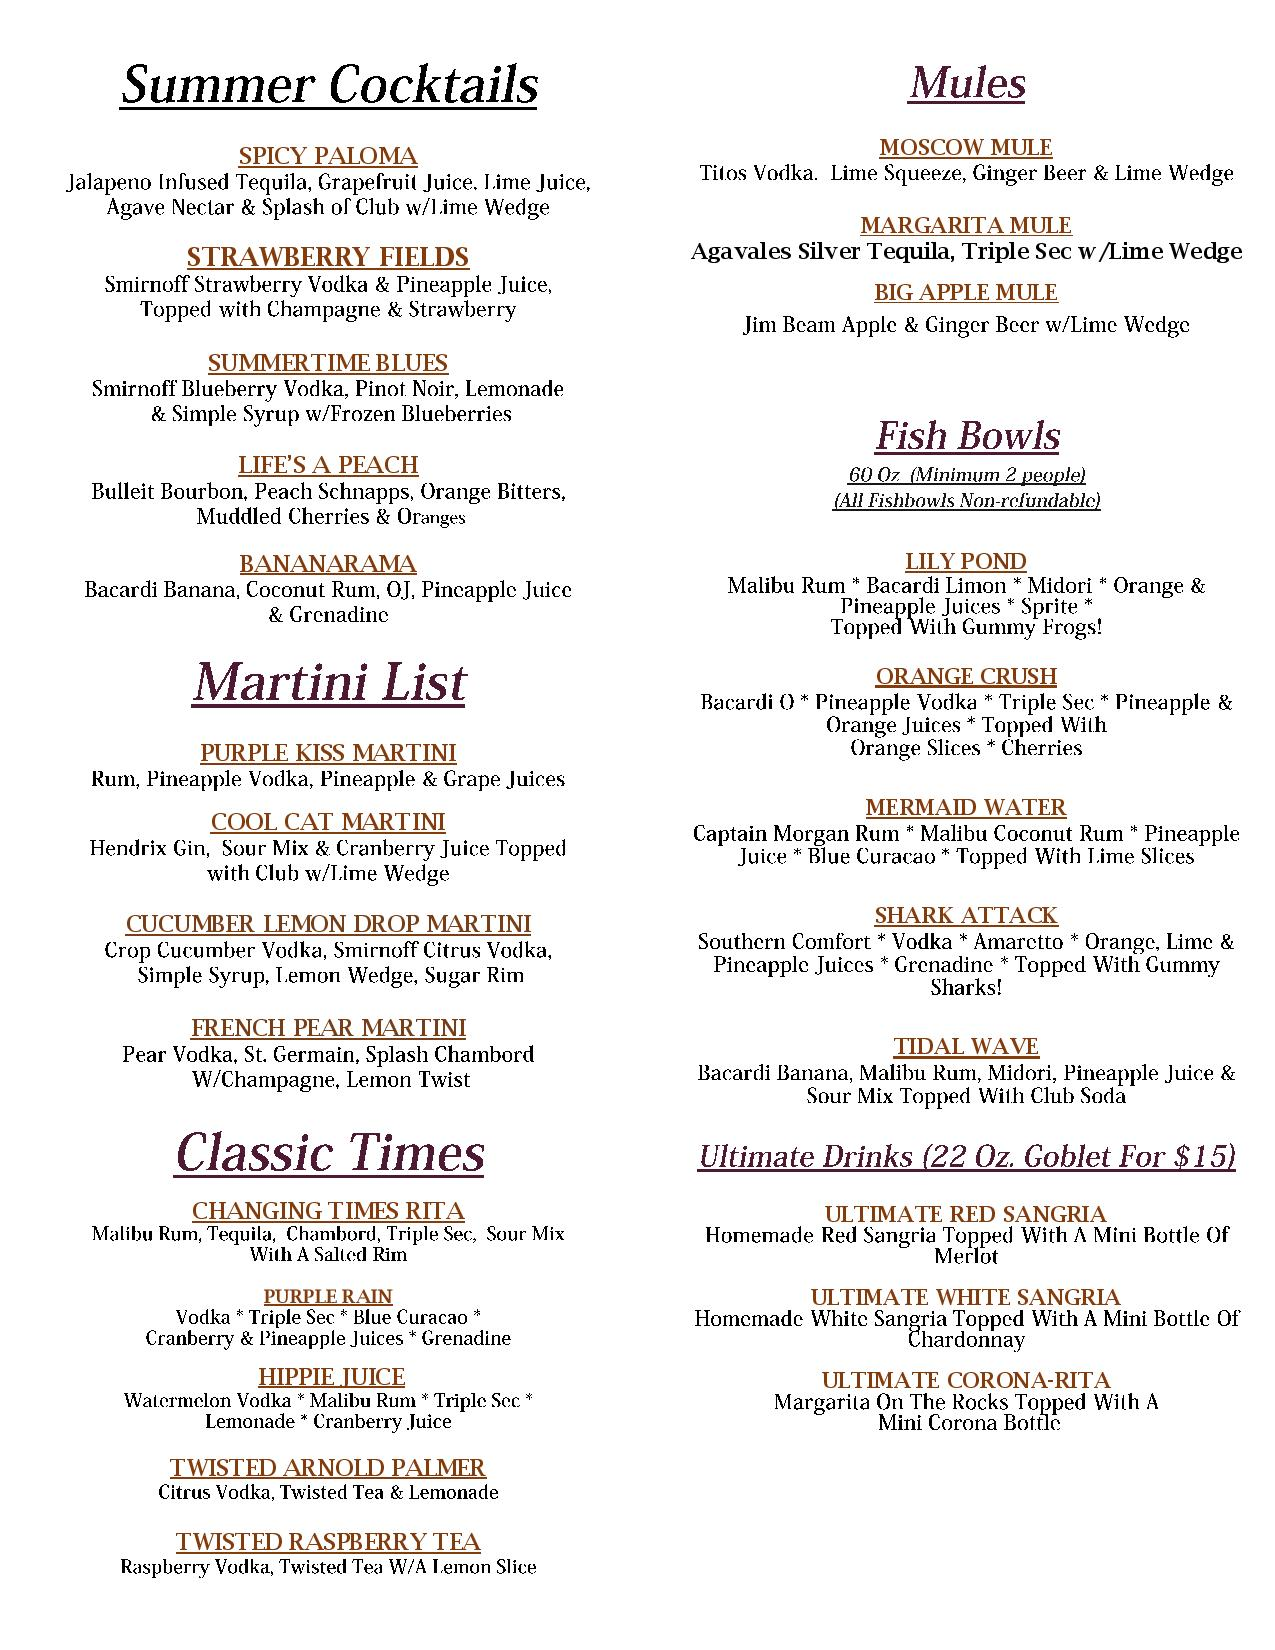 Summer Drink Menu June 2019 Fdale -